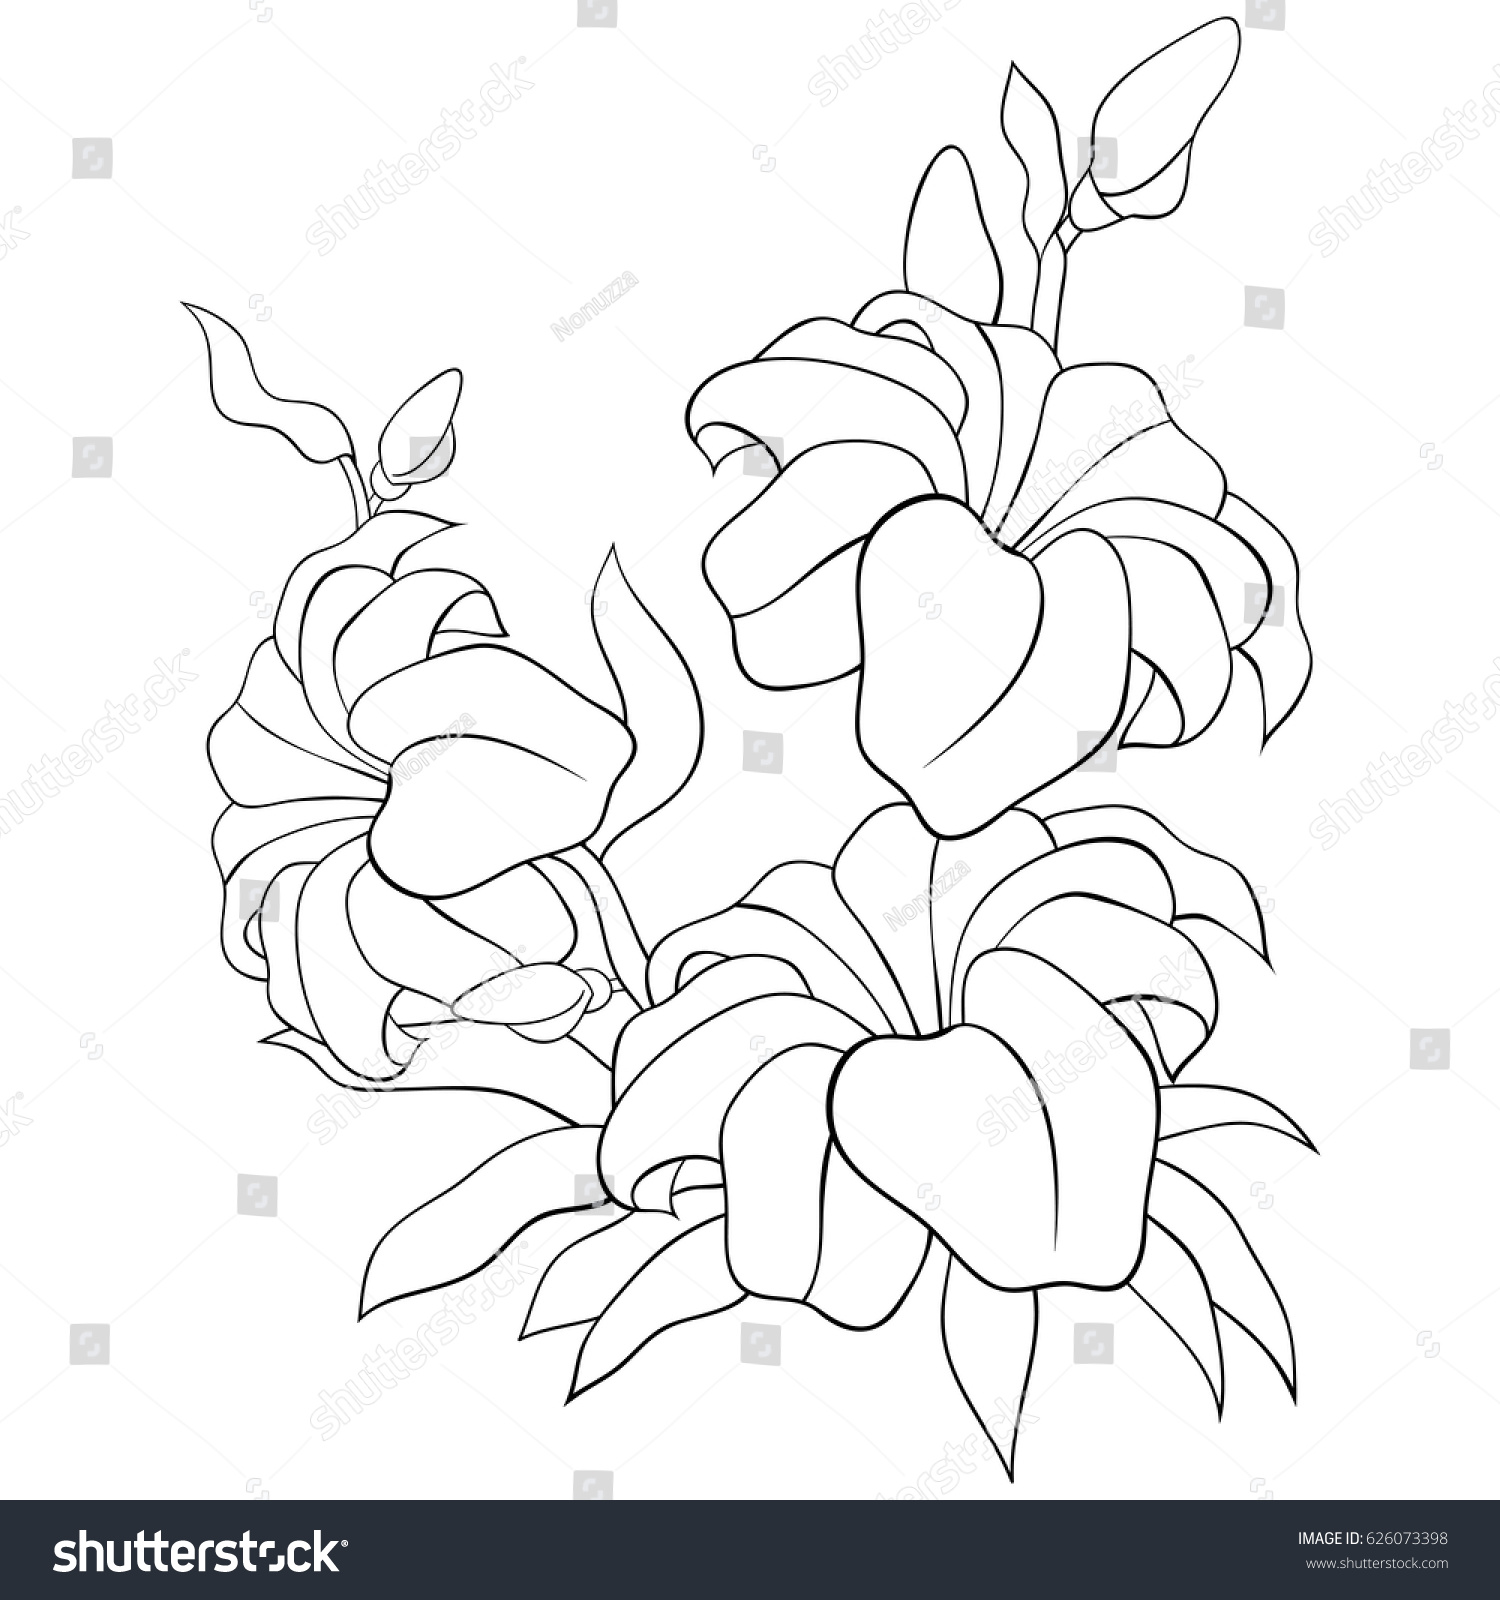 Adult Coloring Page Flowers Leaves Cute Outlines Stock Vector ...